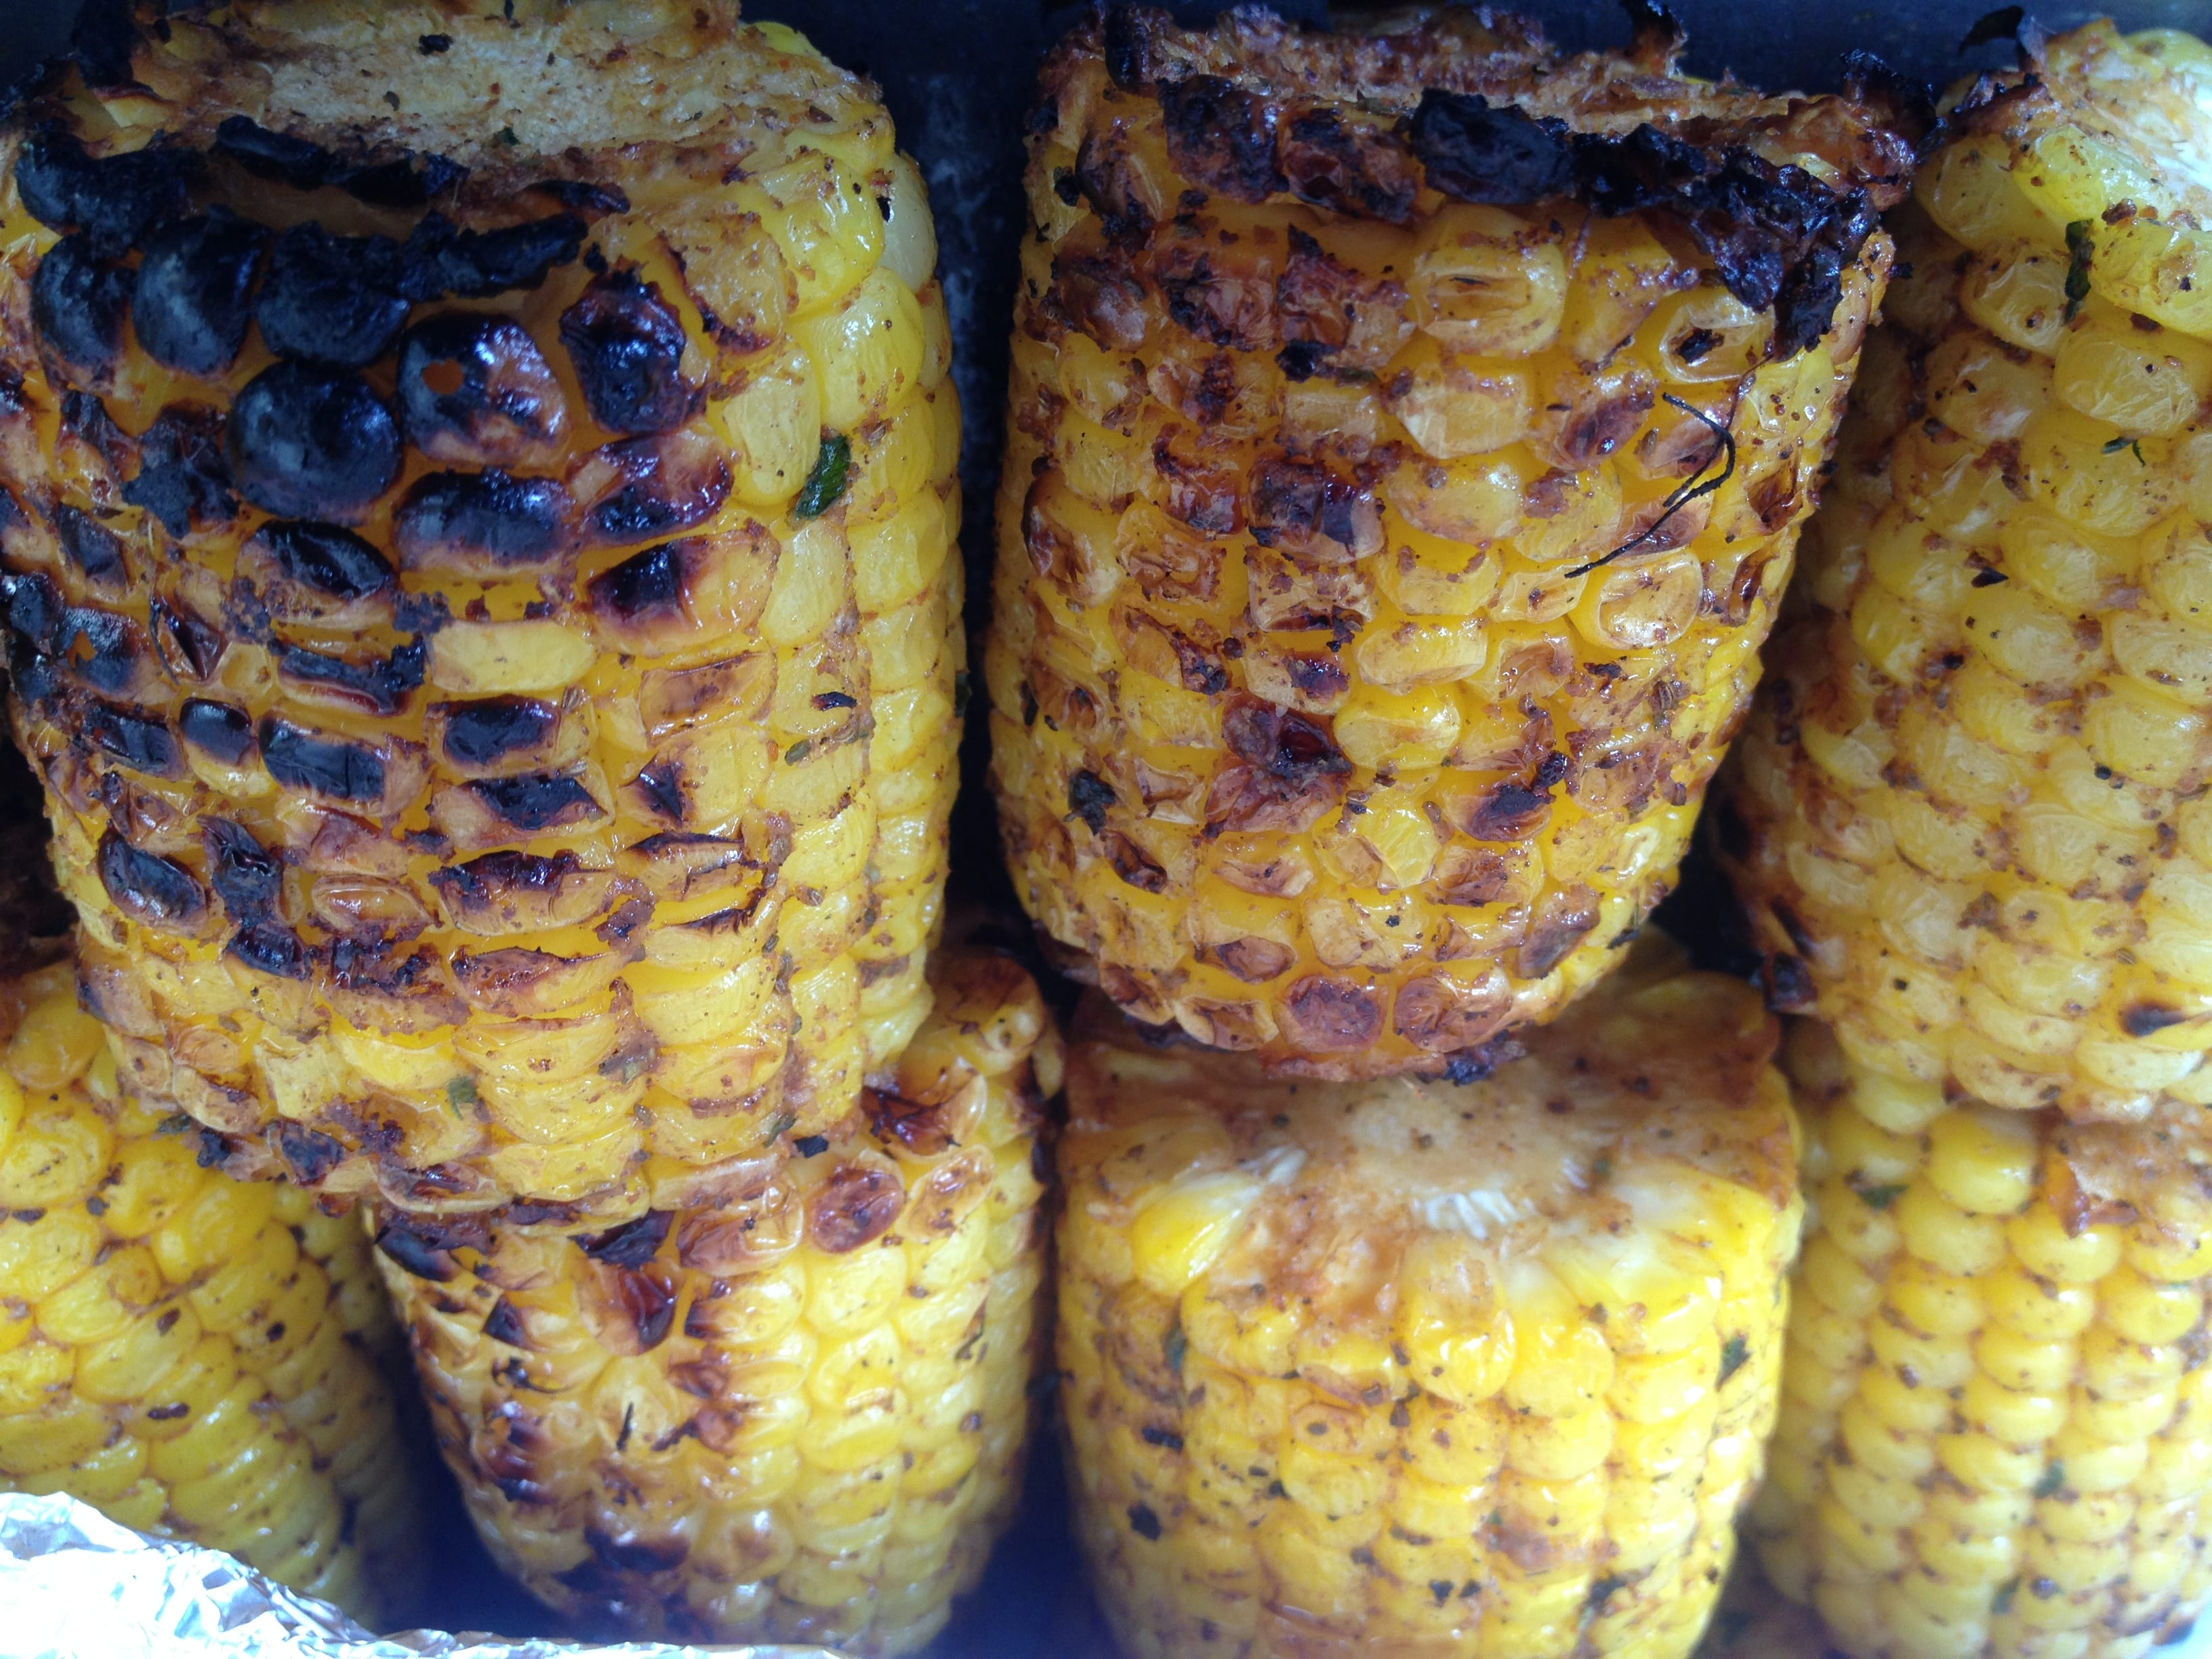 Roasted Sweet Corn (Old Bay Style)